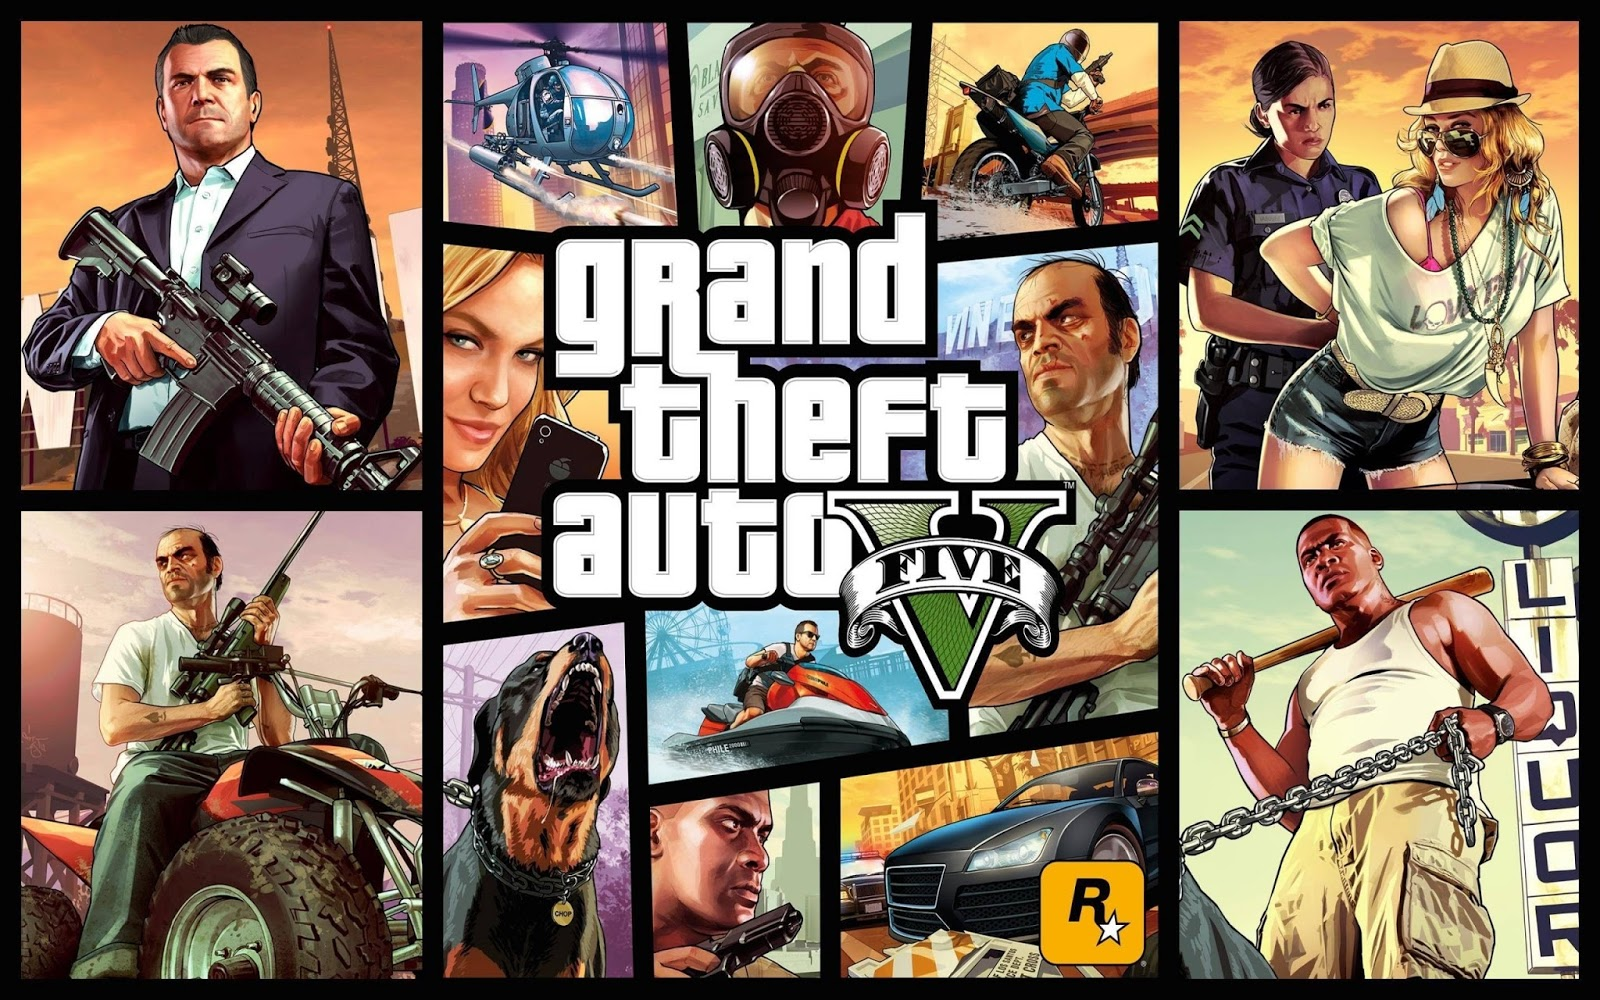 GTA 5 30 GB FILE ONLEY 17 MB Highly Compressed Proof  [ MUST